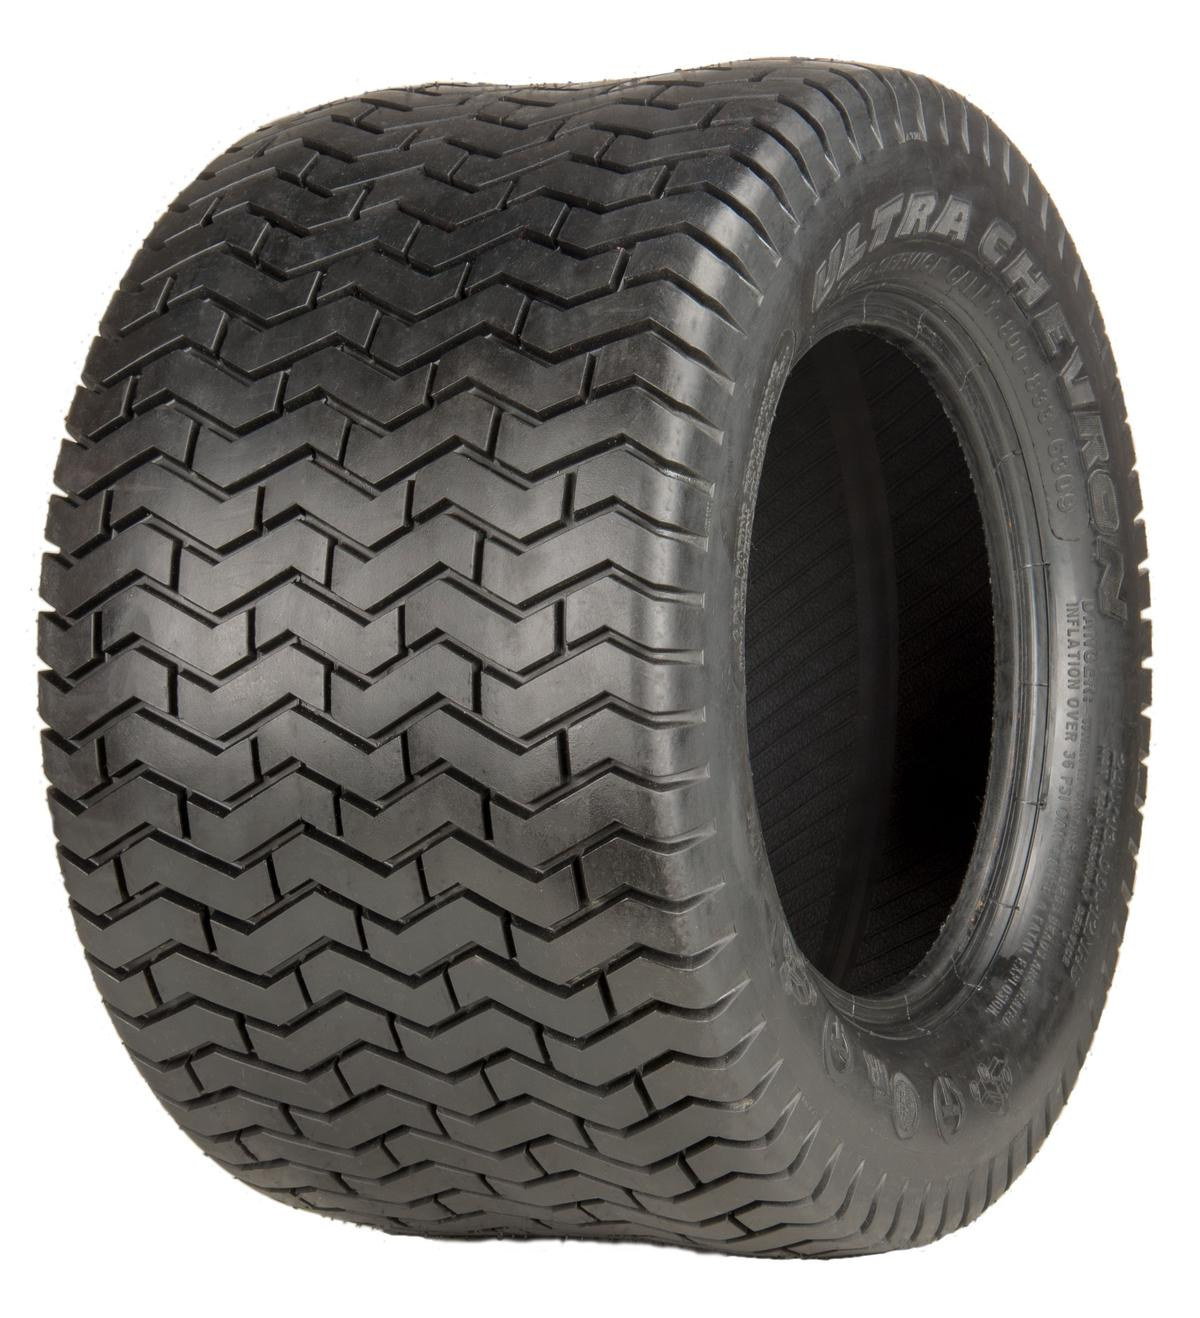 OTR Ultra Chevron 29-14.00-15 12 Ply Yard - Lawn Tire